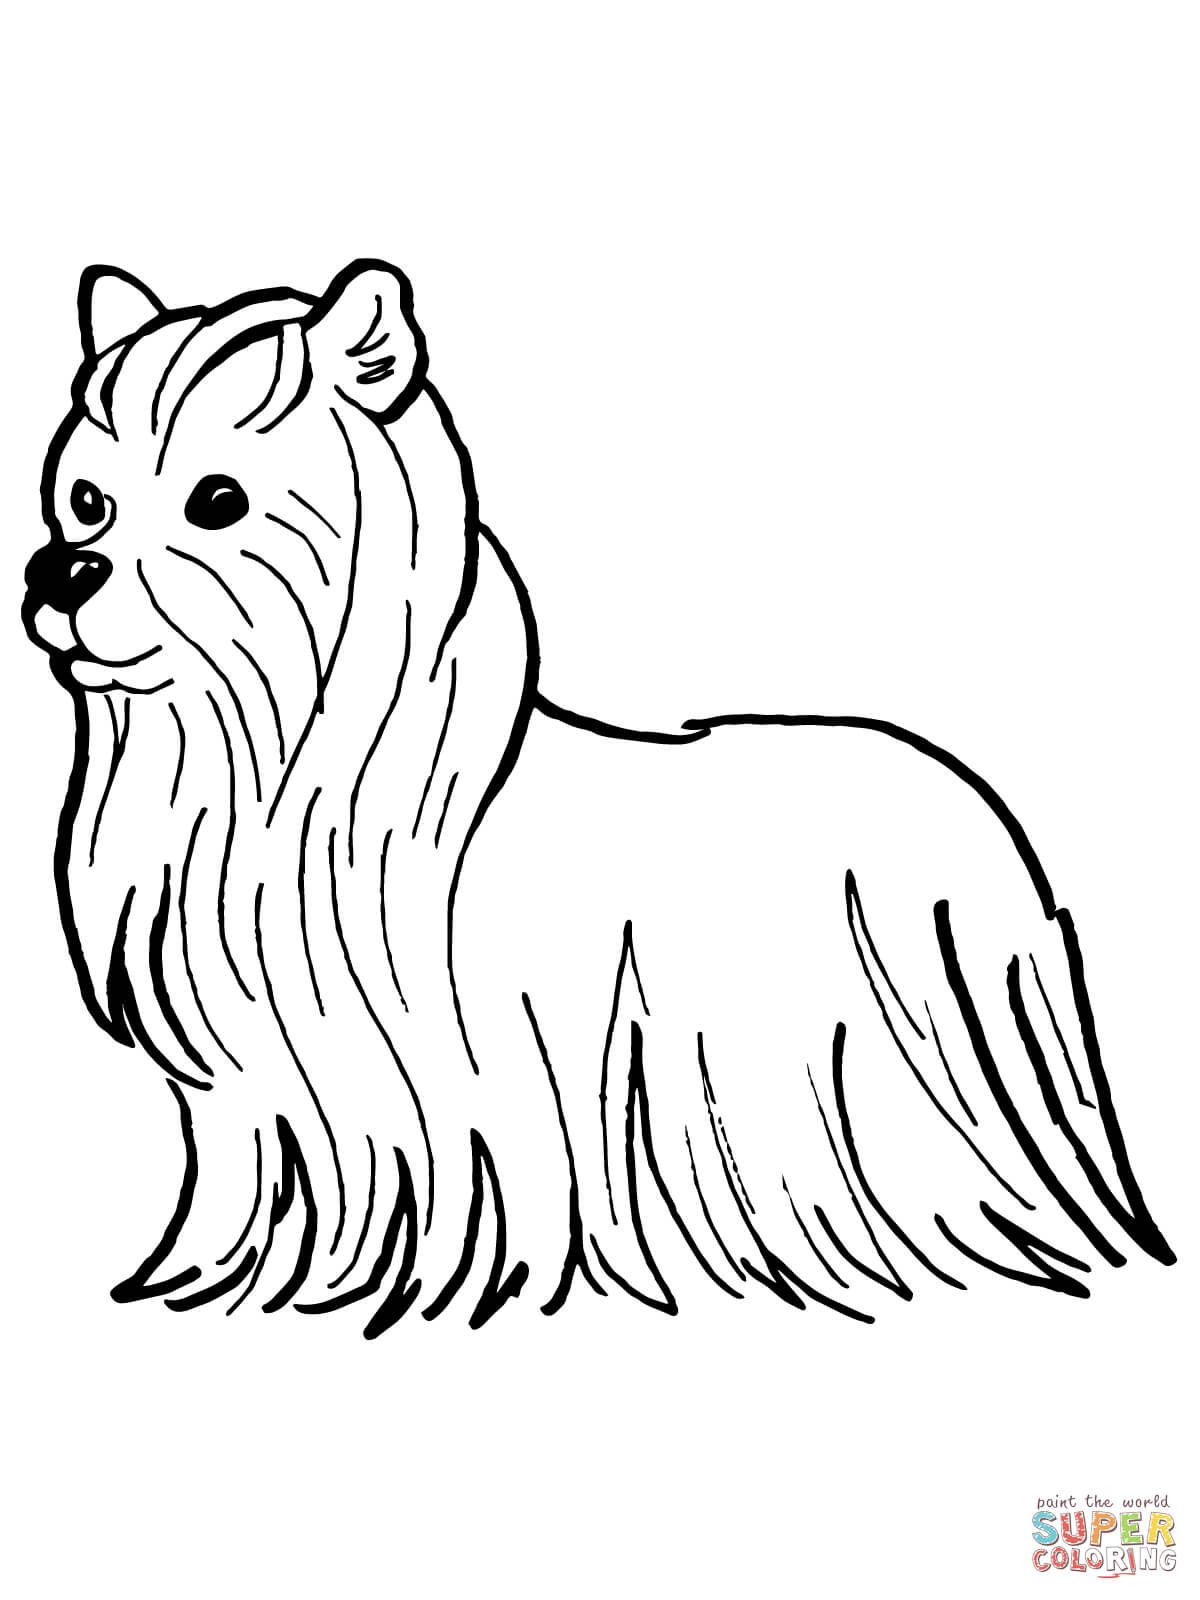 Yorkshire Terrier Coloring Page Free Printable Sketch